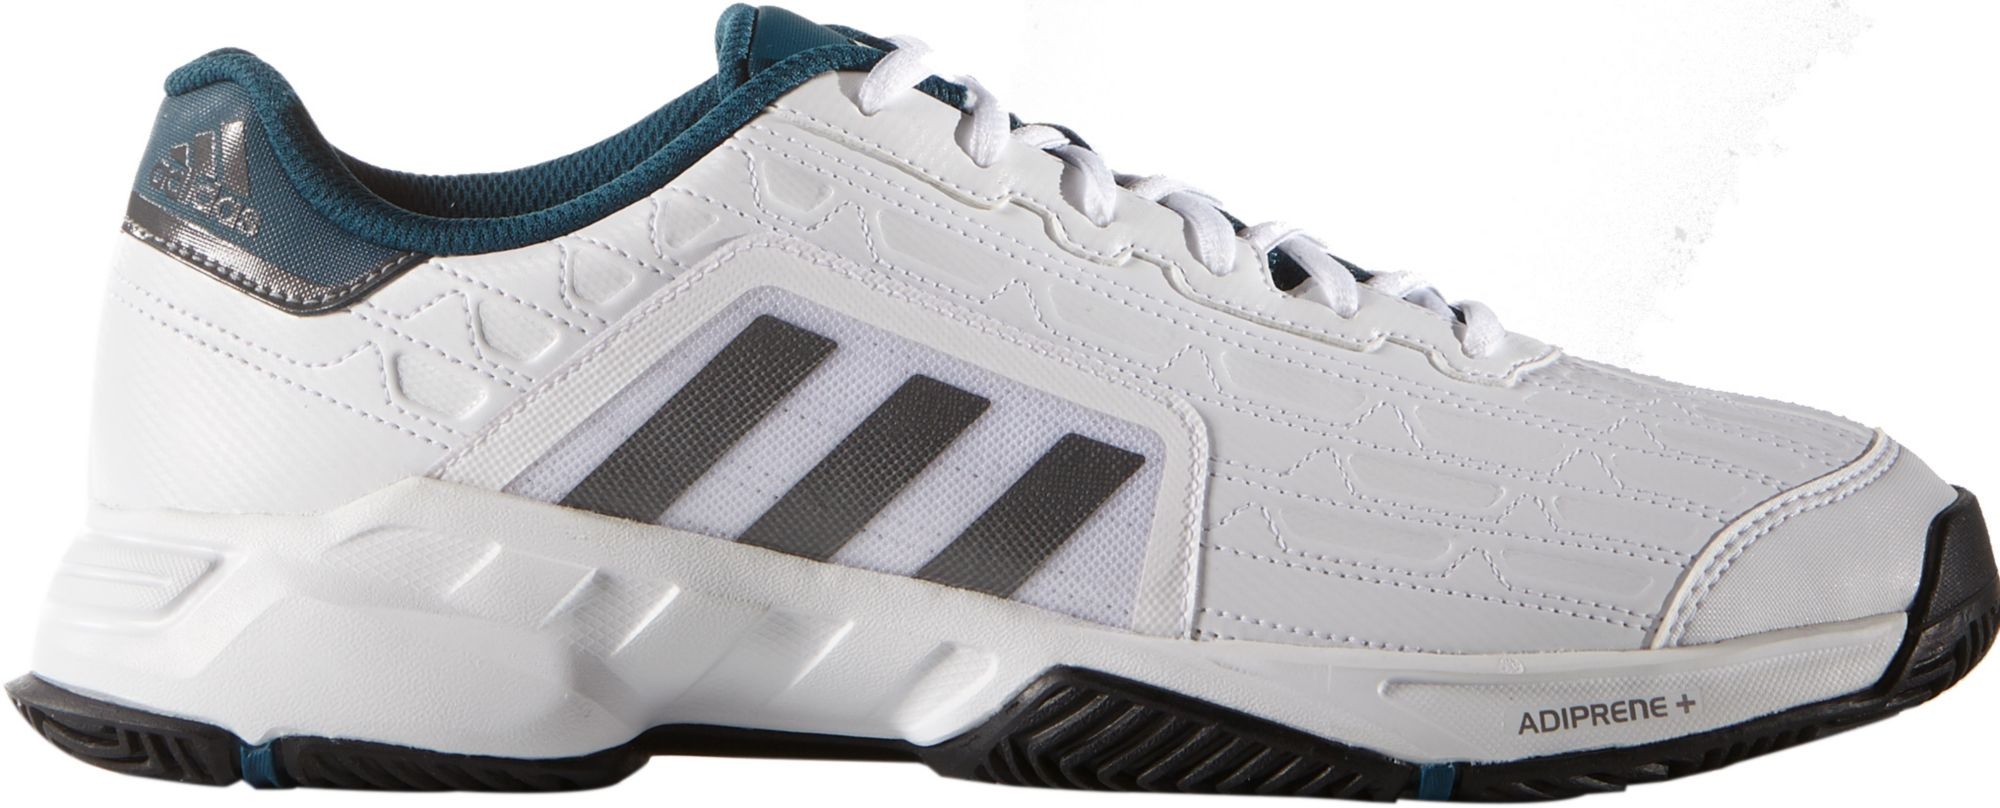 adidas tennis shoes noimagefound ??? OQRYJNA